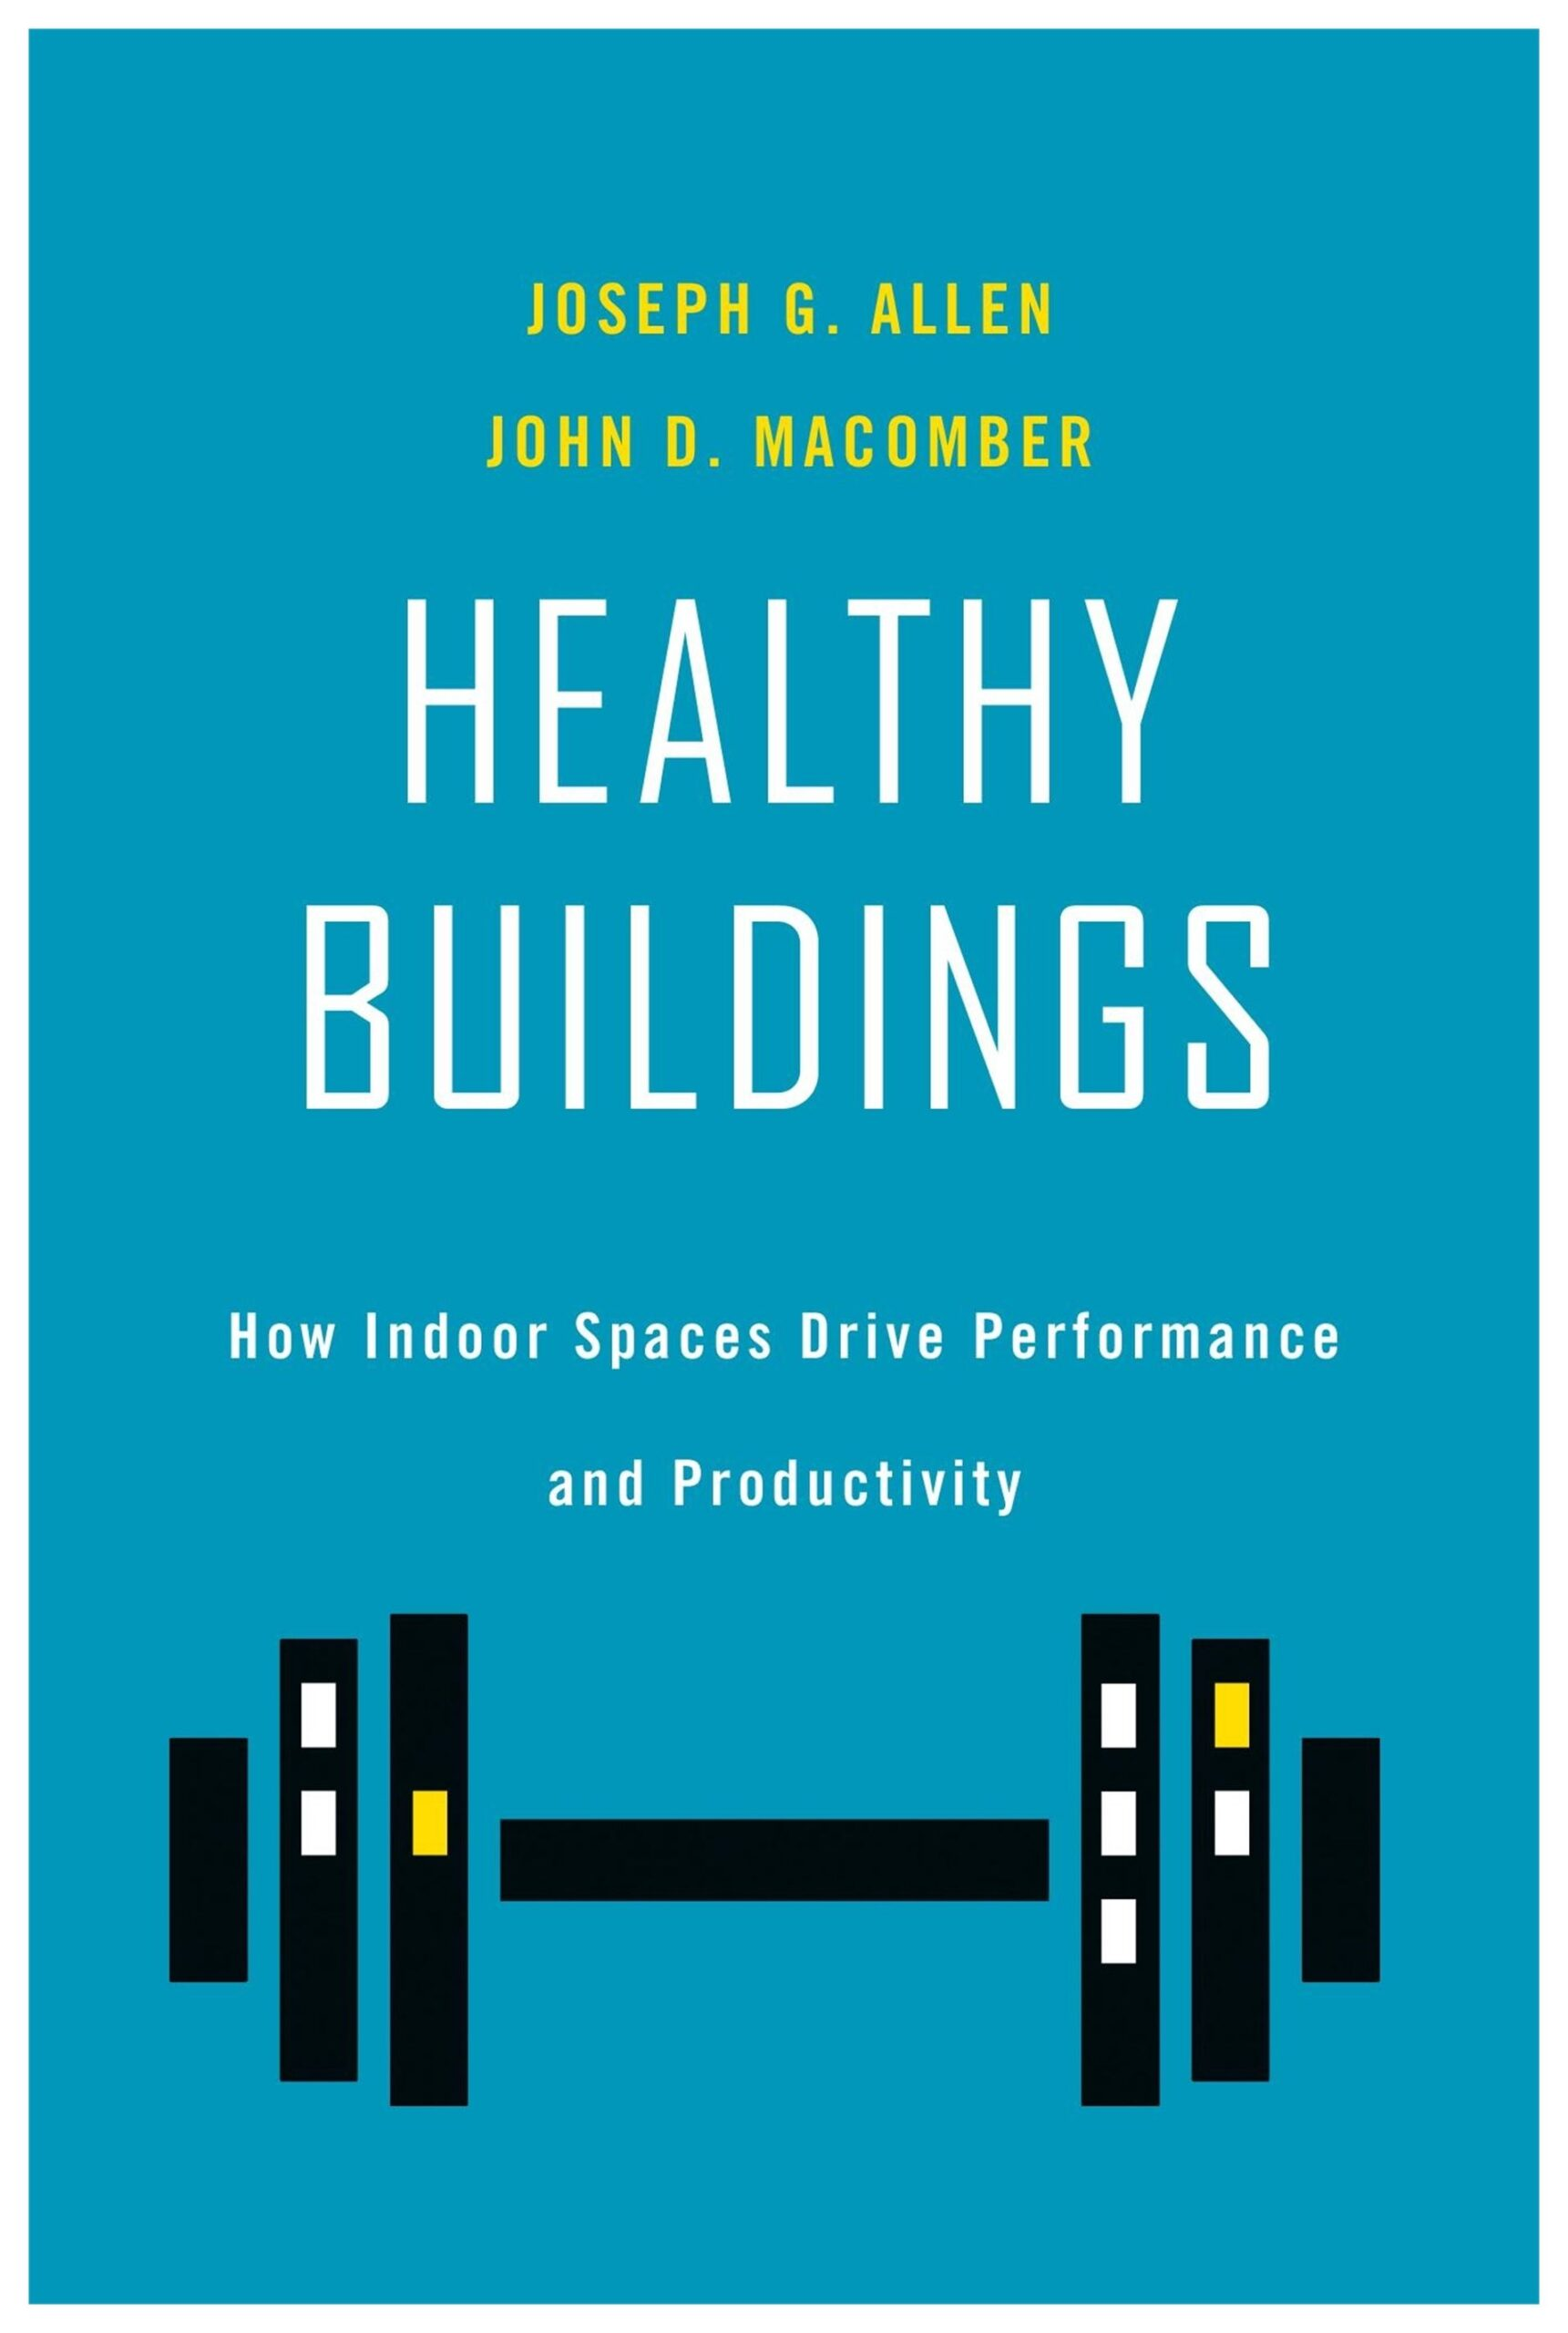 Book cover, dumb bells abstractly resemble buildings